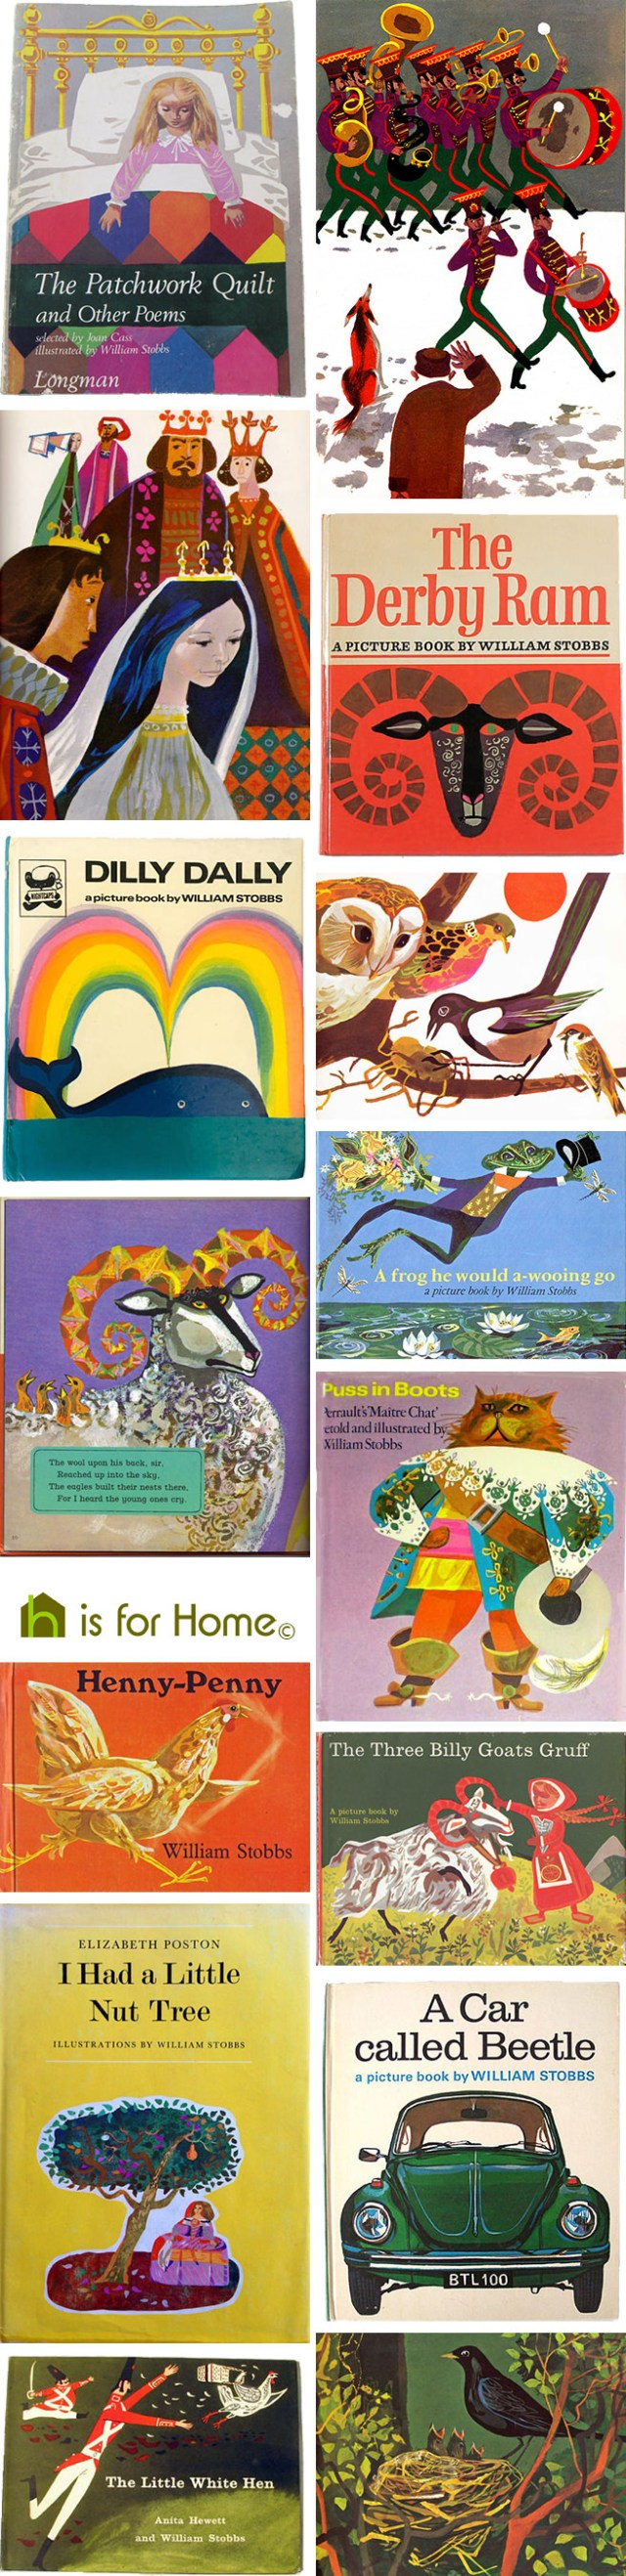 Mosaic of William Stobbs children's book illustrations | H is for Home